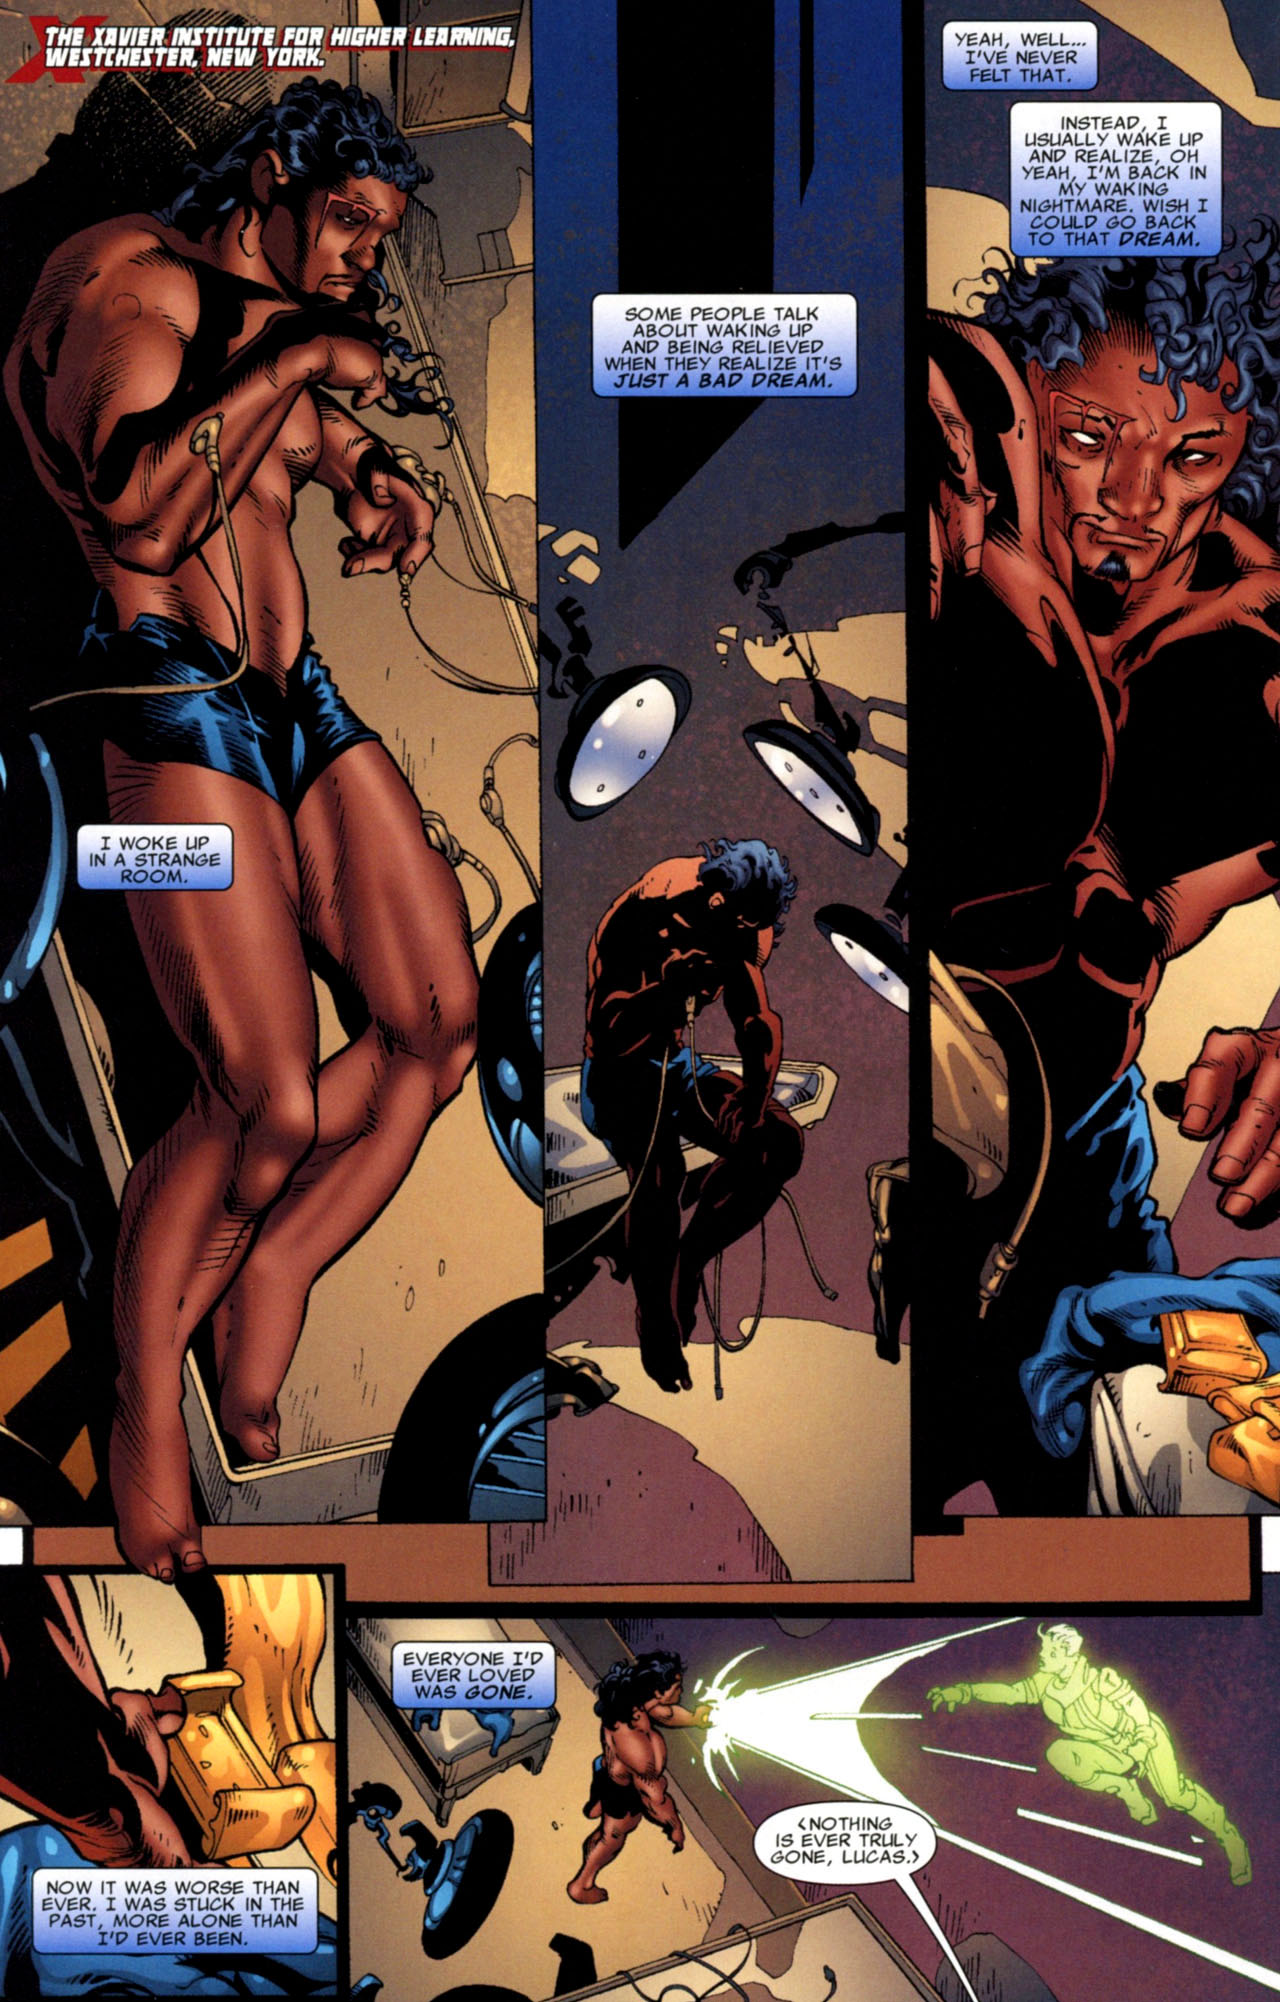 Bishop X Men Porn - X Men The Times And Life Of Lucas Bishop Issue 3   Read X Men The Times And  Life Of Lucas Bishop Issue 3 comic online in high quality. Read Full Comic